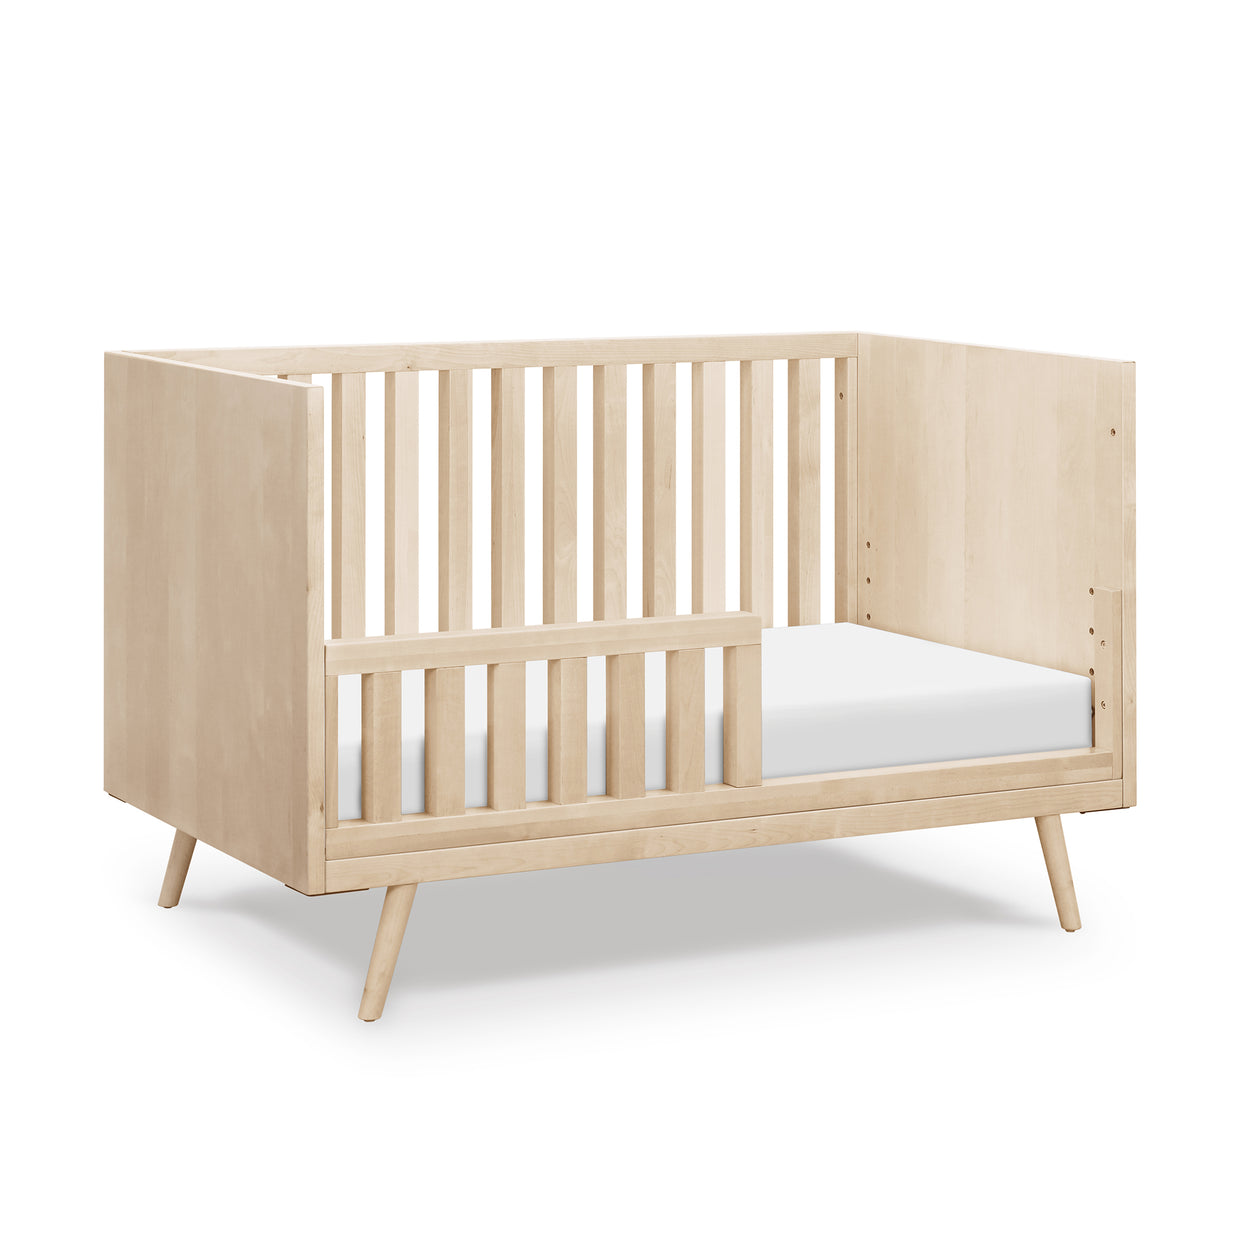 Nifty Toddler Rail Extension Kit in Birch